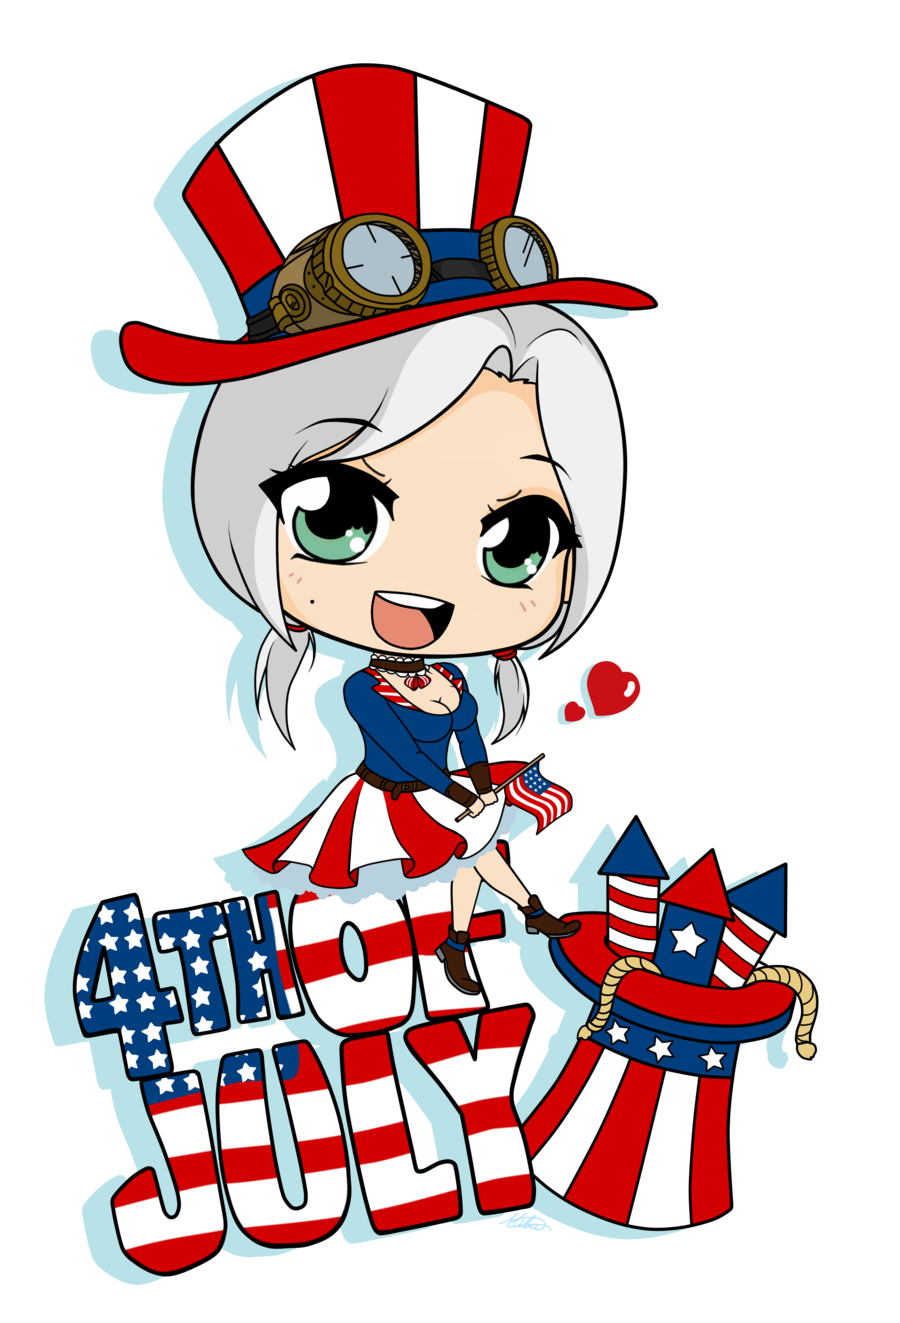 Independence day drawing chibi. Hotdog clipart 4th july